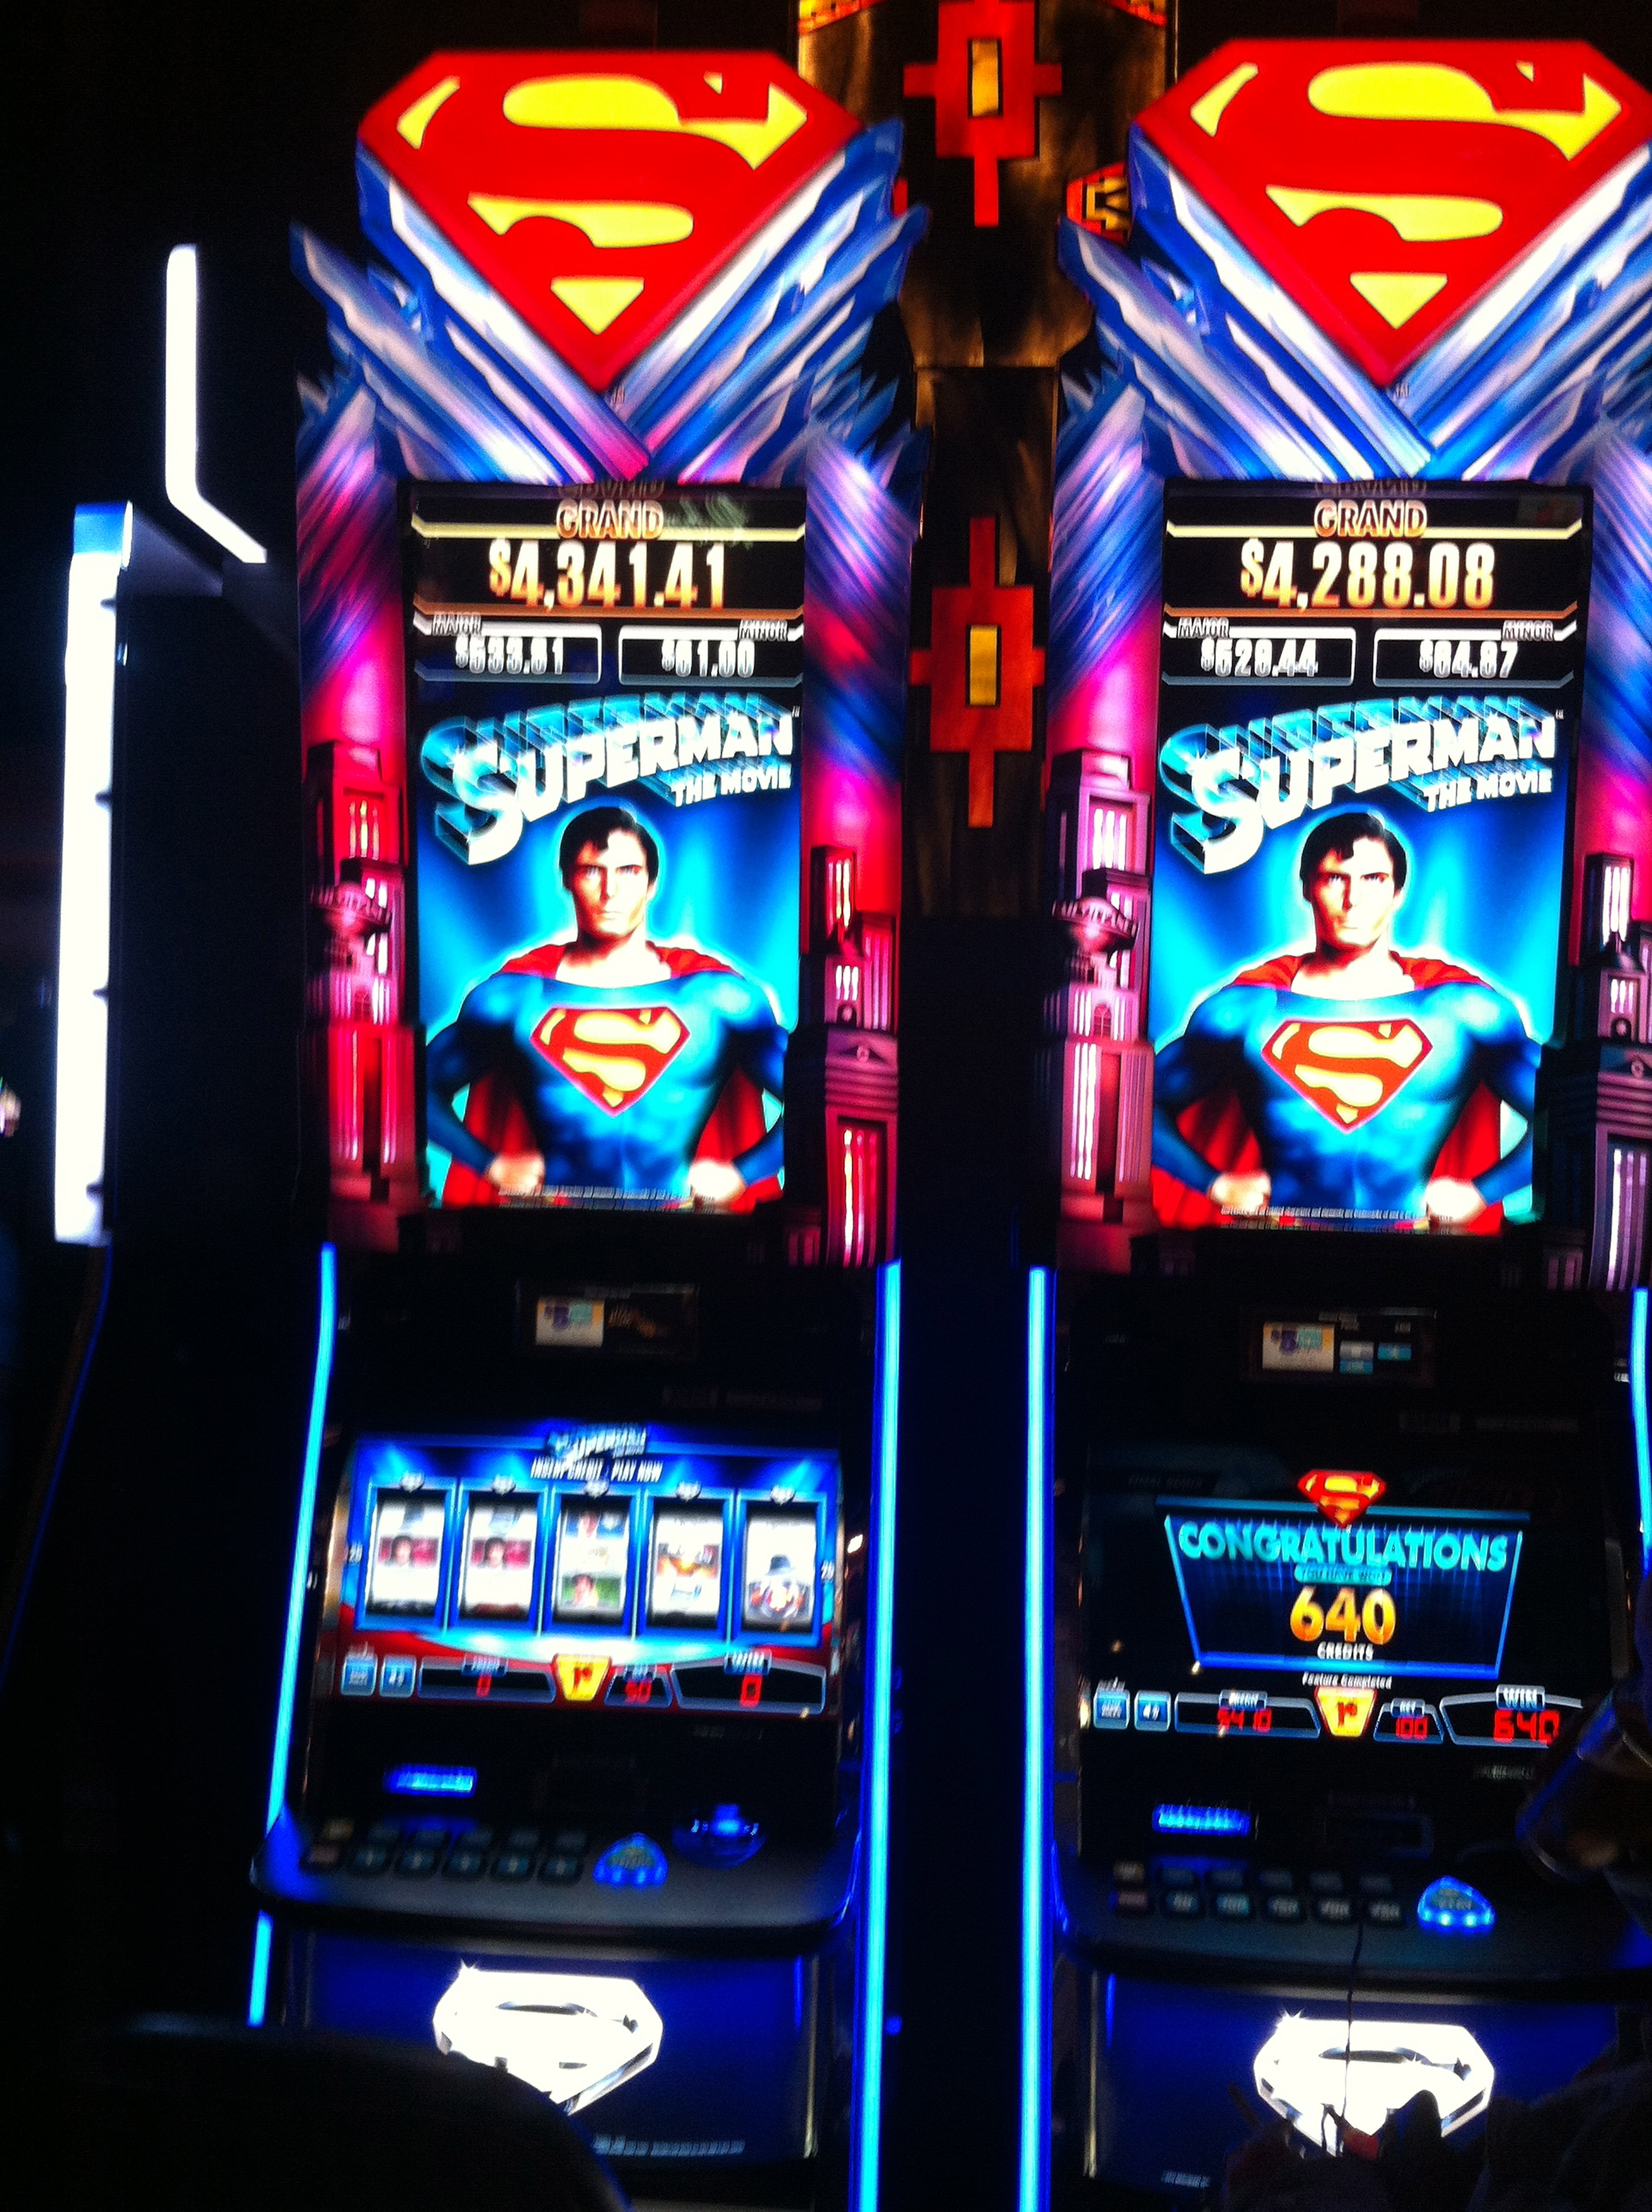 Best Video Slot Machines To Play